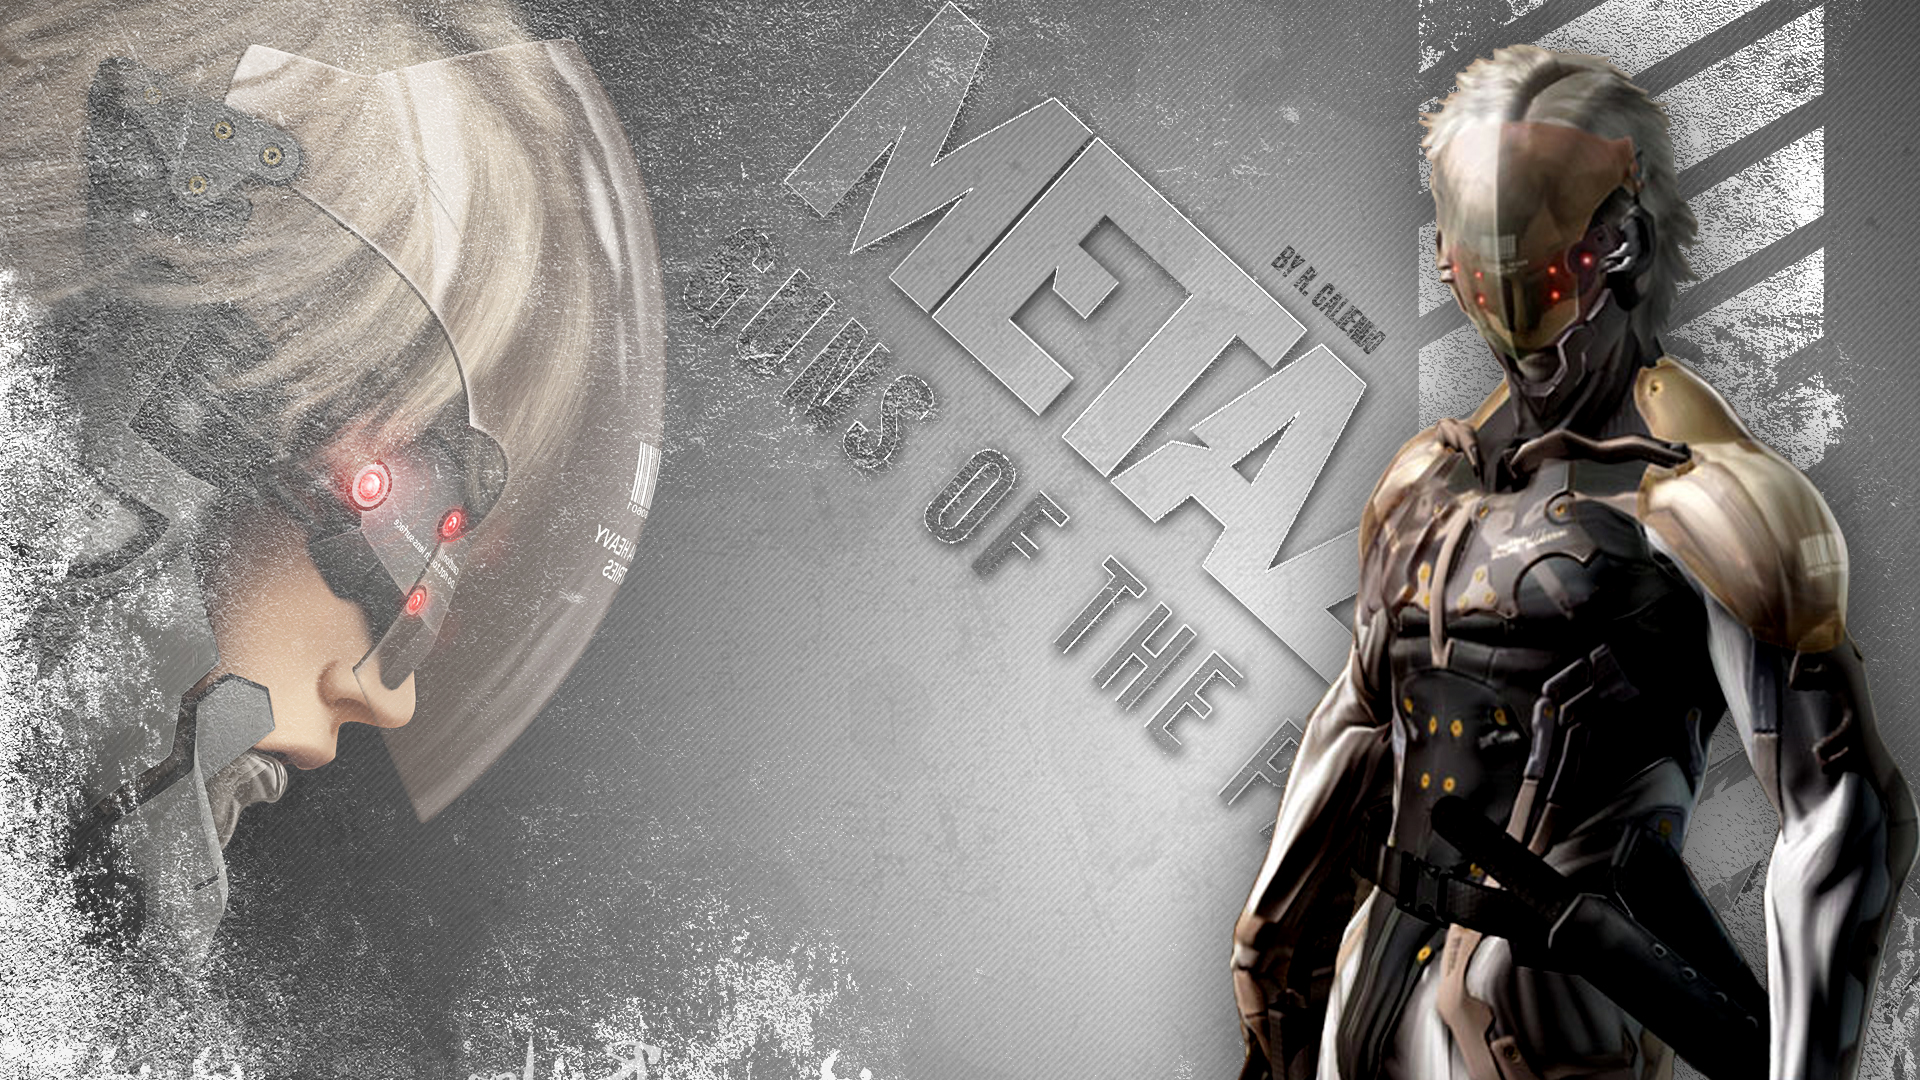 Metal gear solid raiden by doncaliendo on deviantart metal gear solid raiden by doncaliendo voltagebd